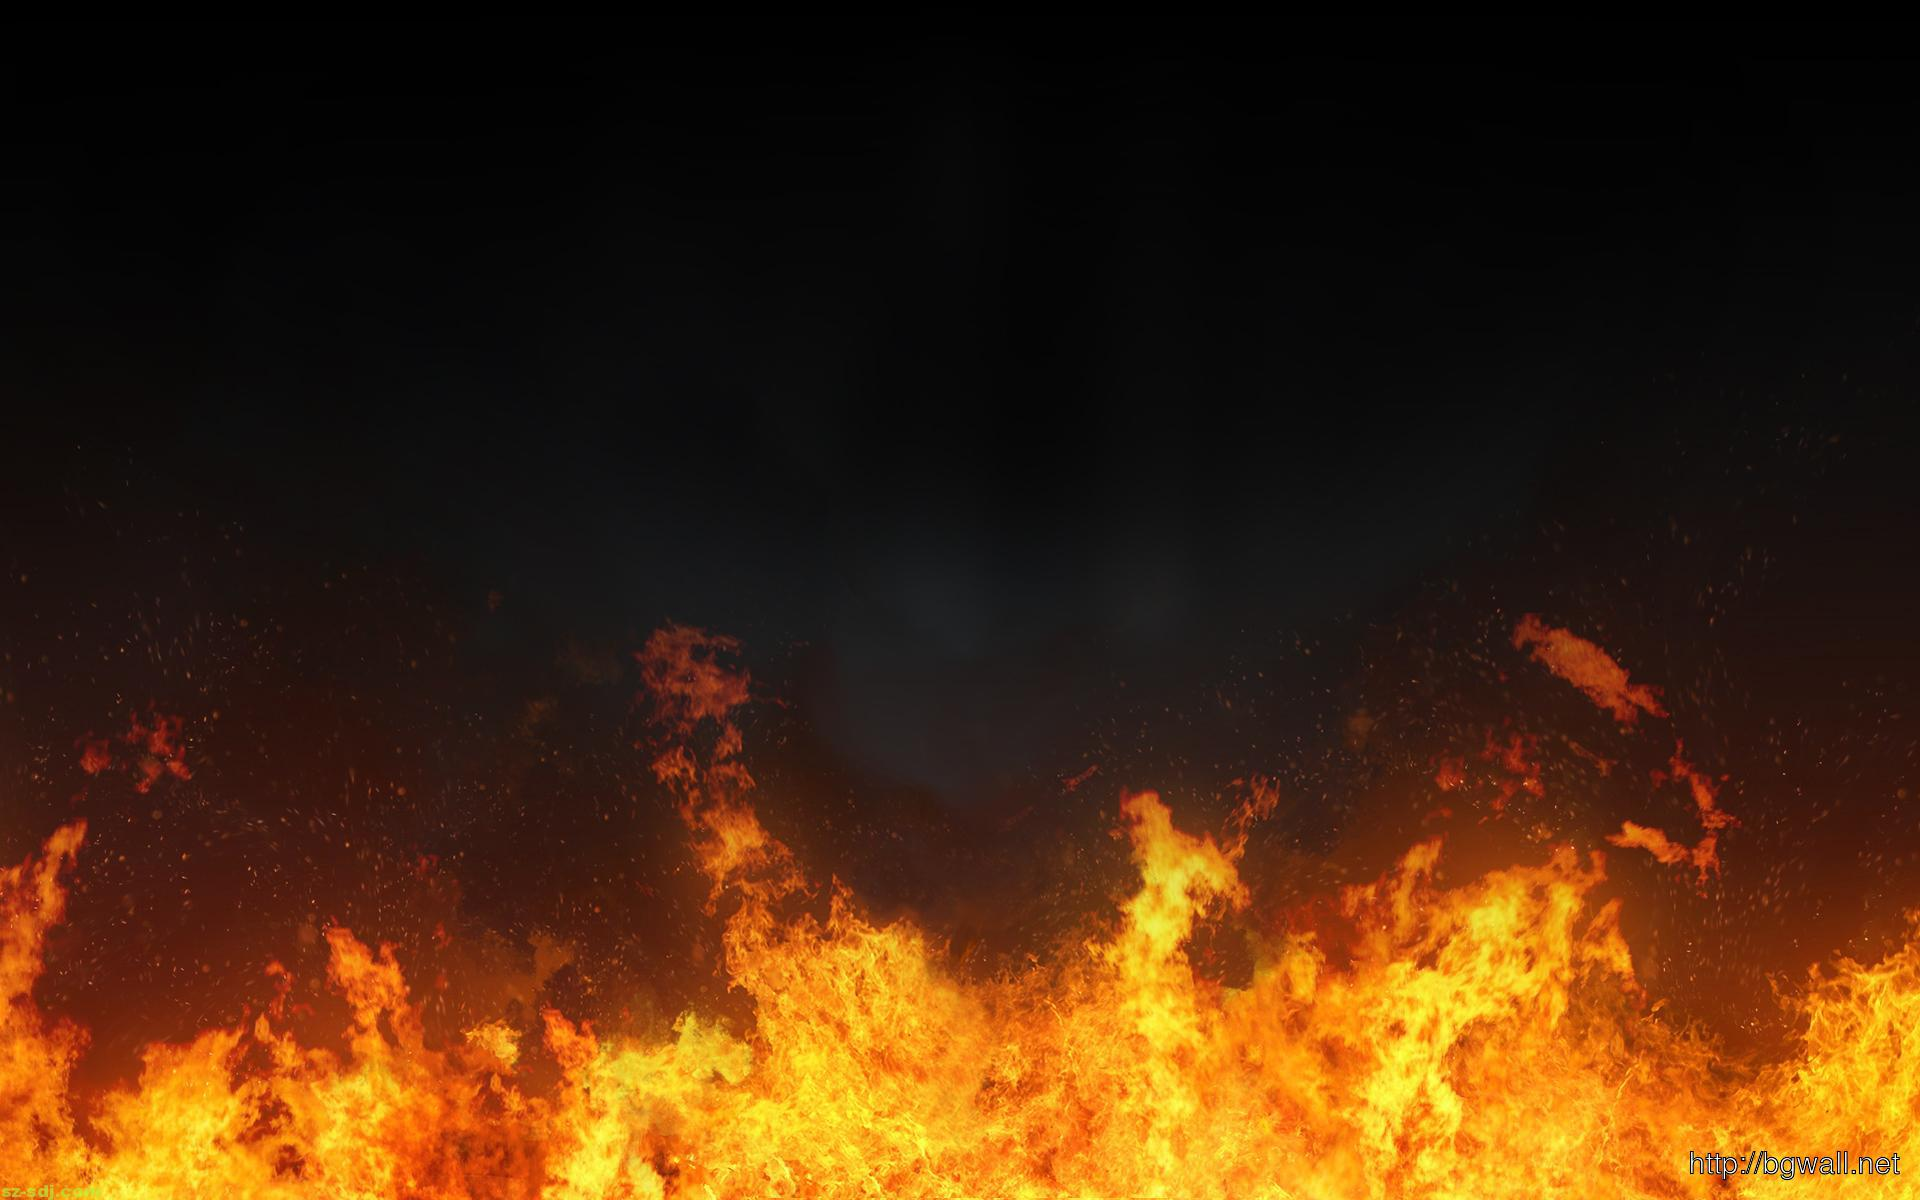 Home Miscellaneous Fire Of The Hell Wallpaper Computer Hd 1920x1200